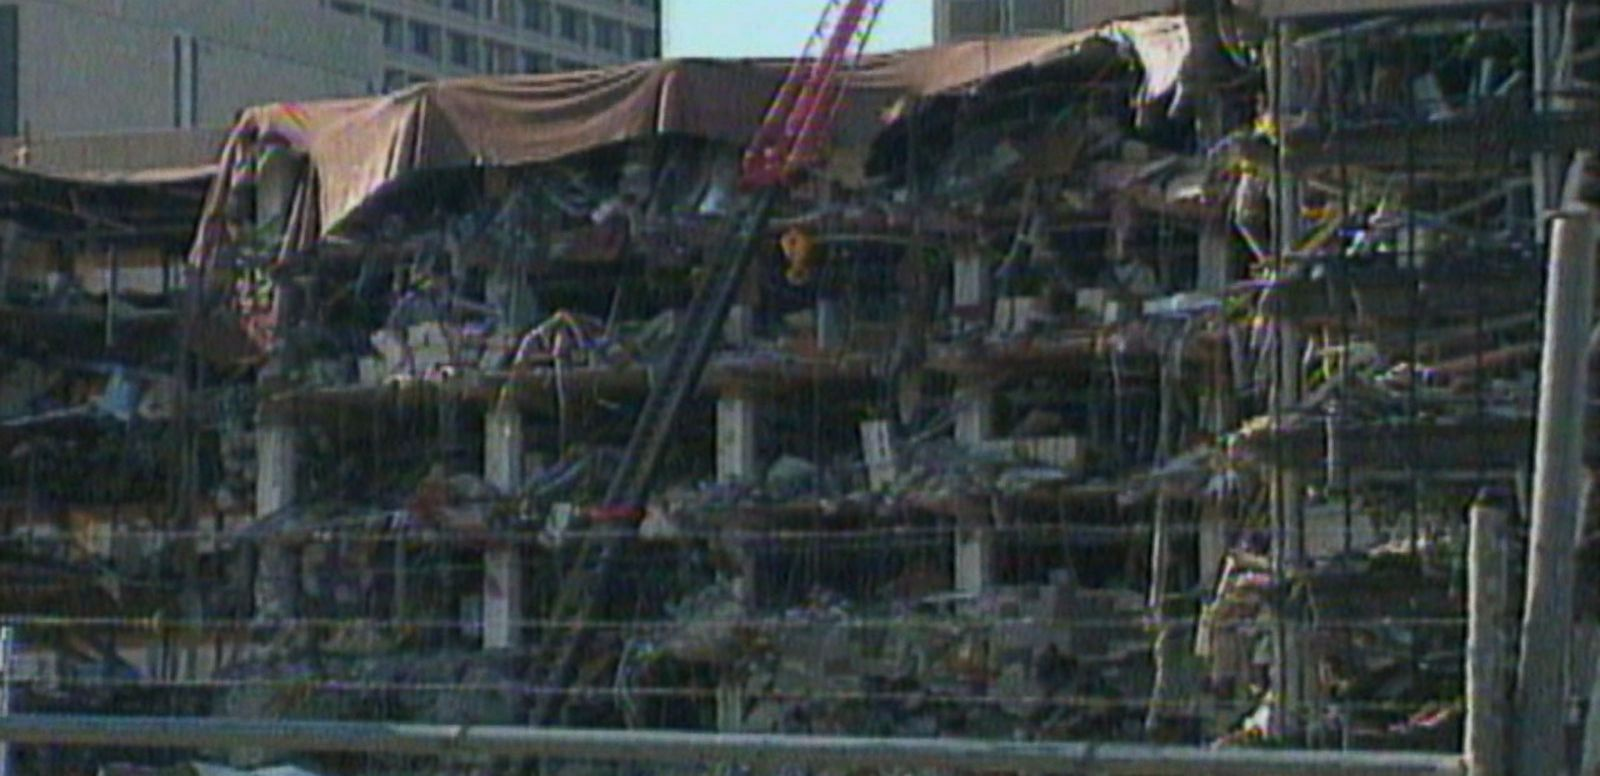 VIDEO: Oklahoma City Bombing Remembered 20 Years Later